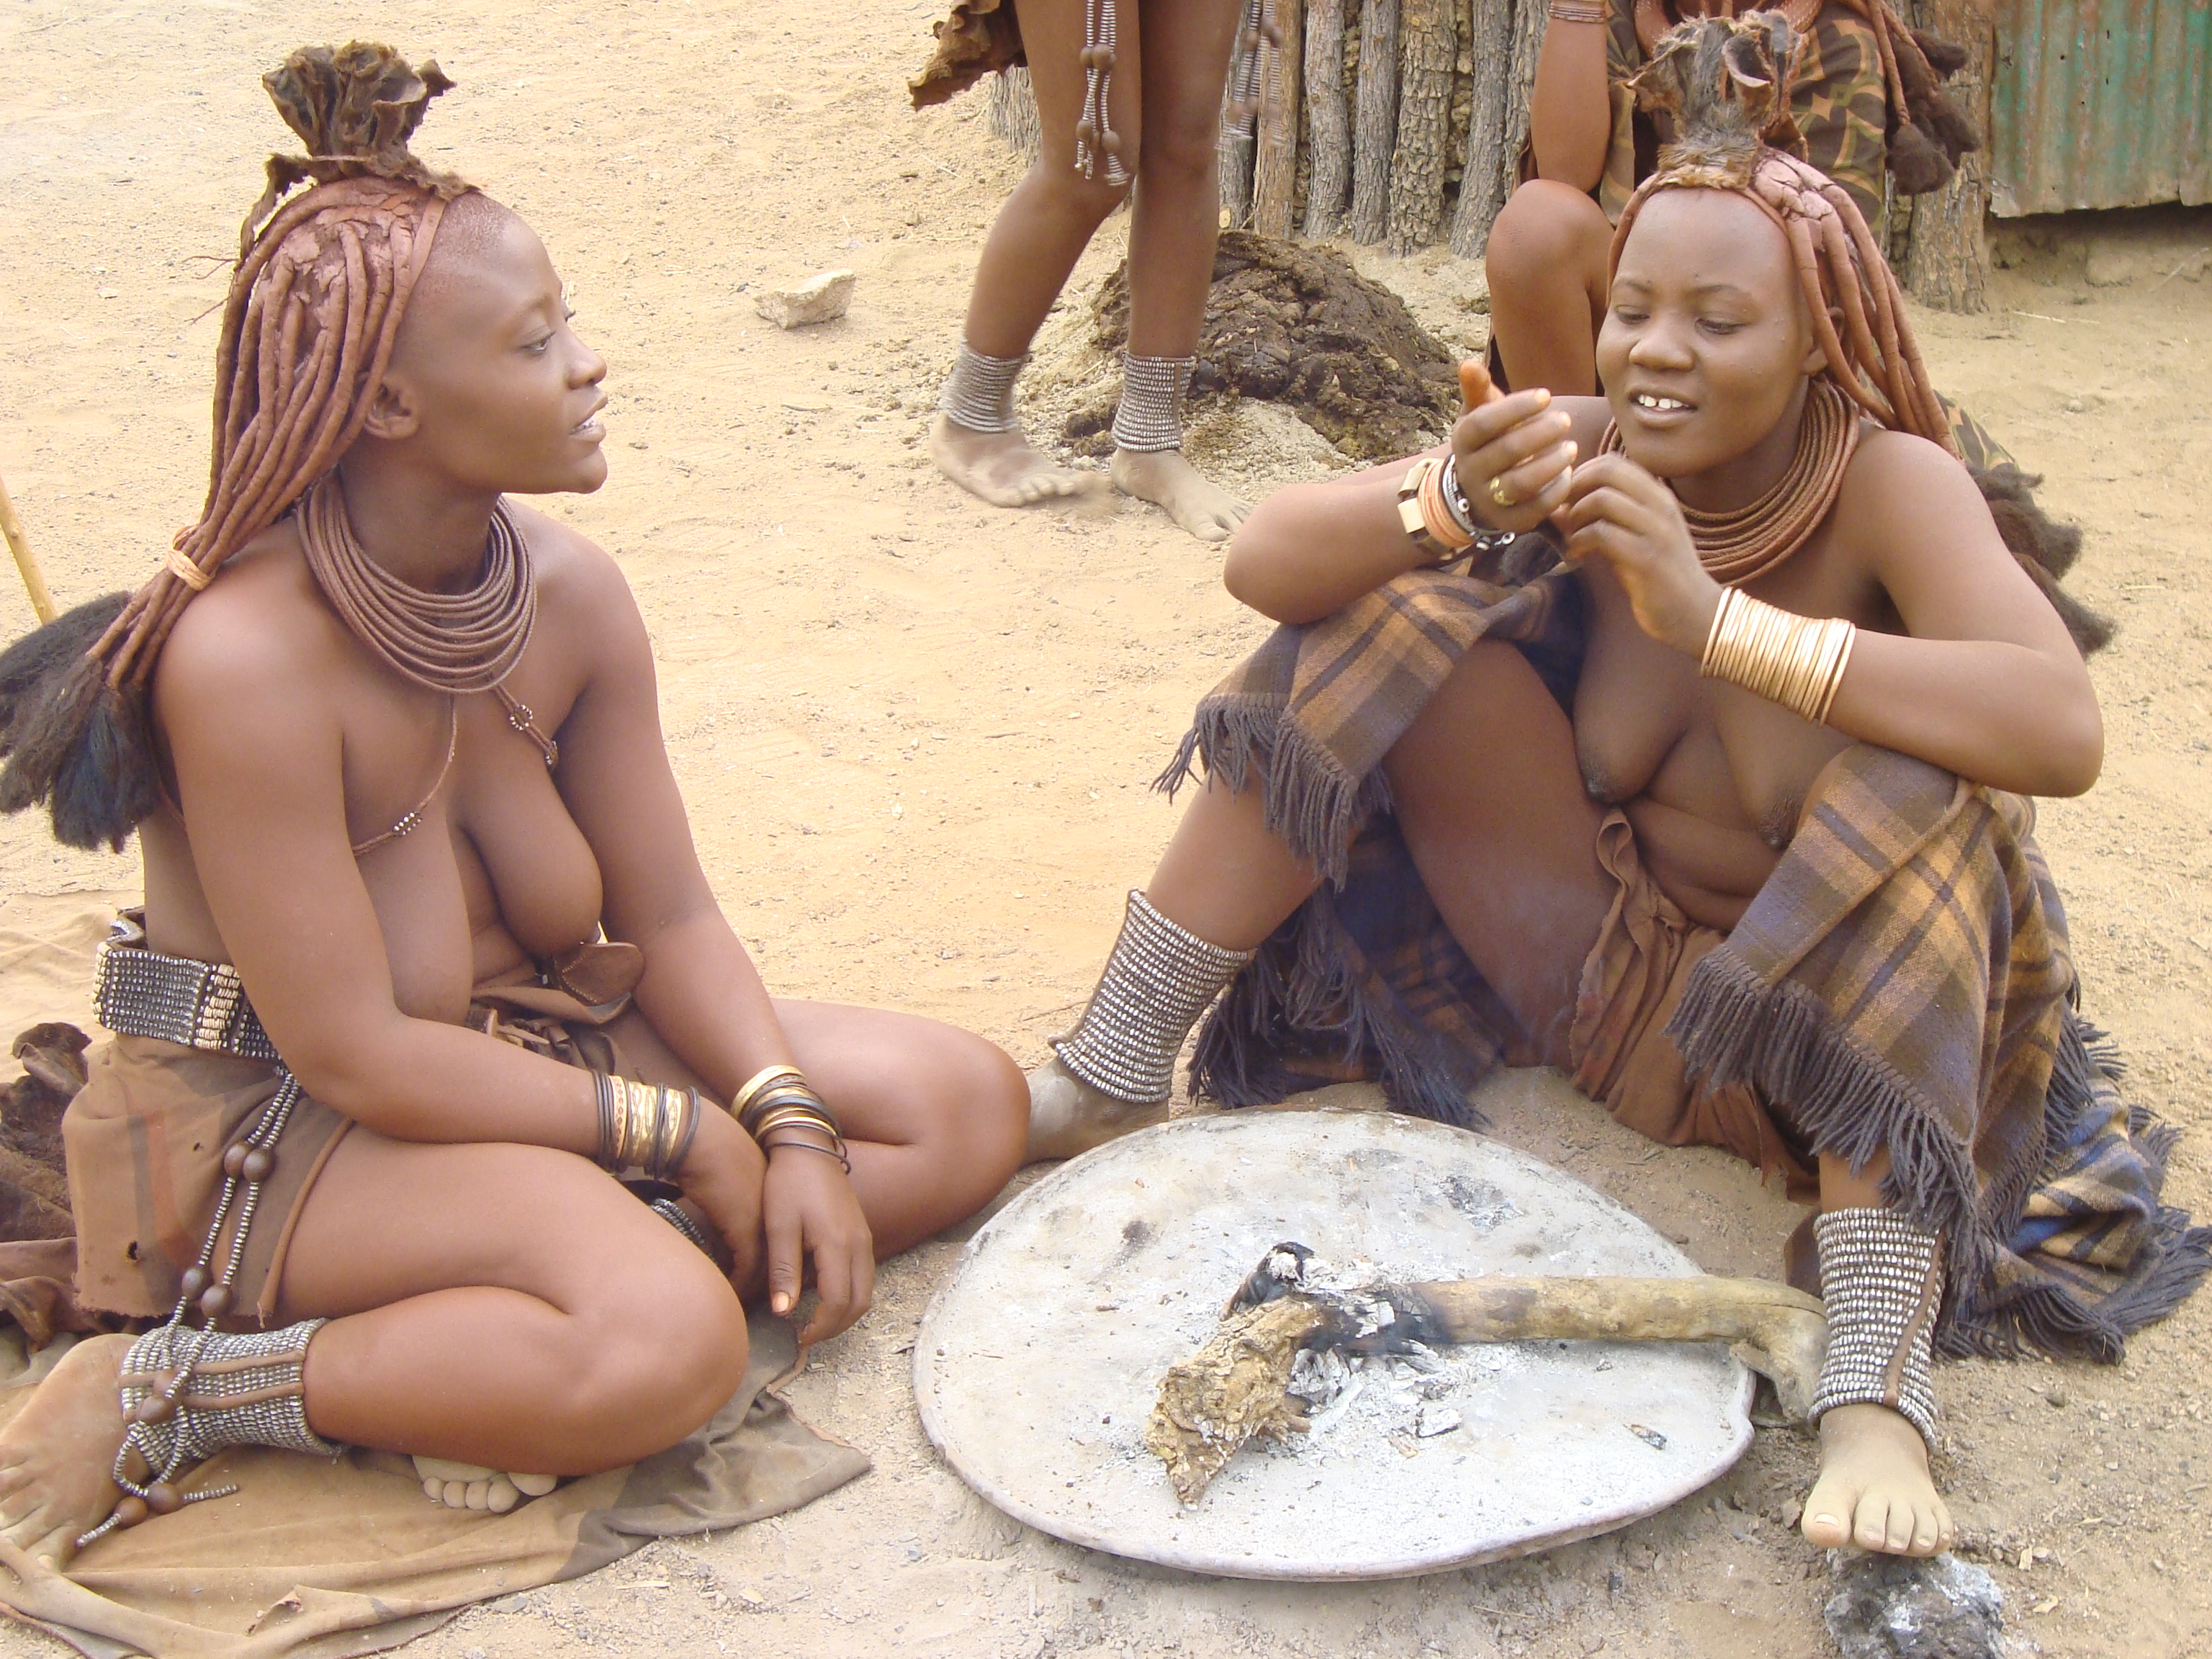 Sex in african tribes